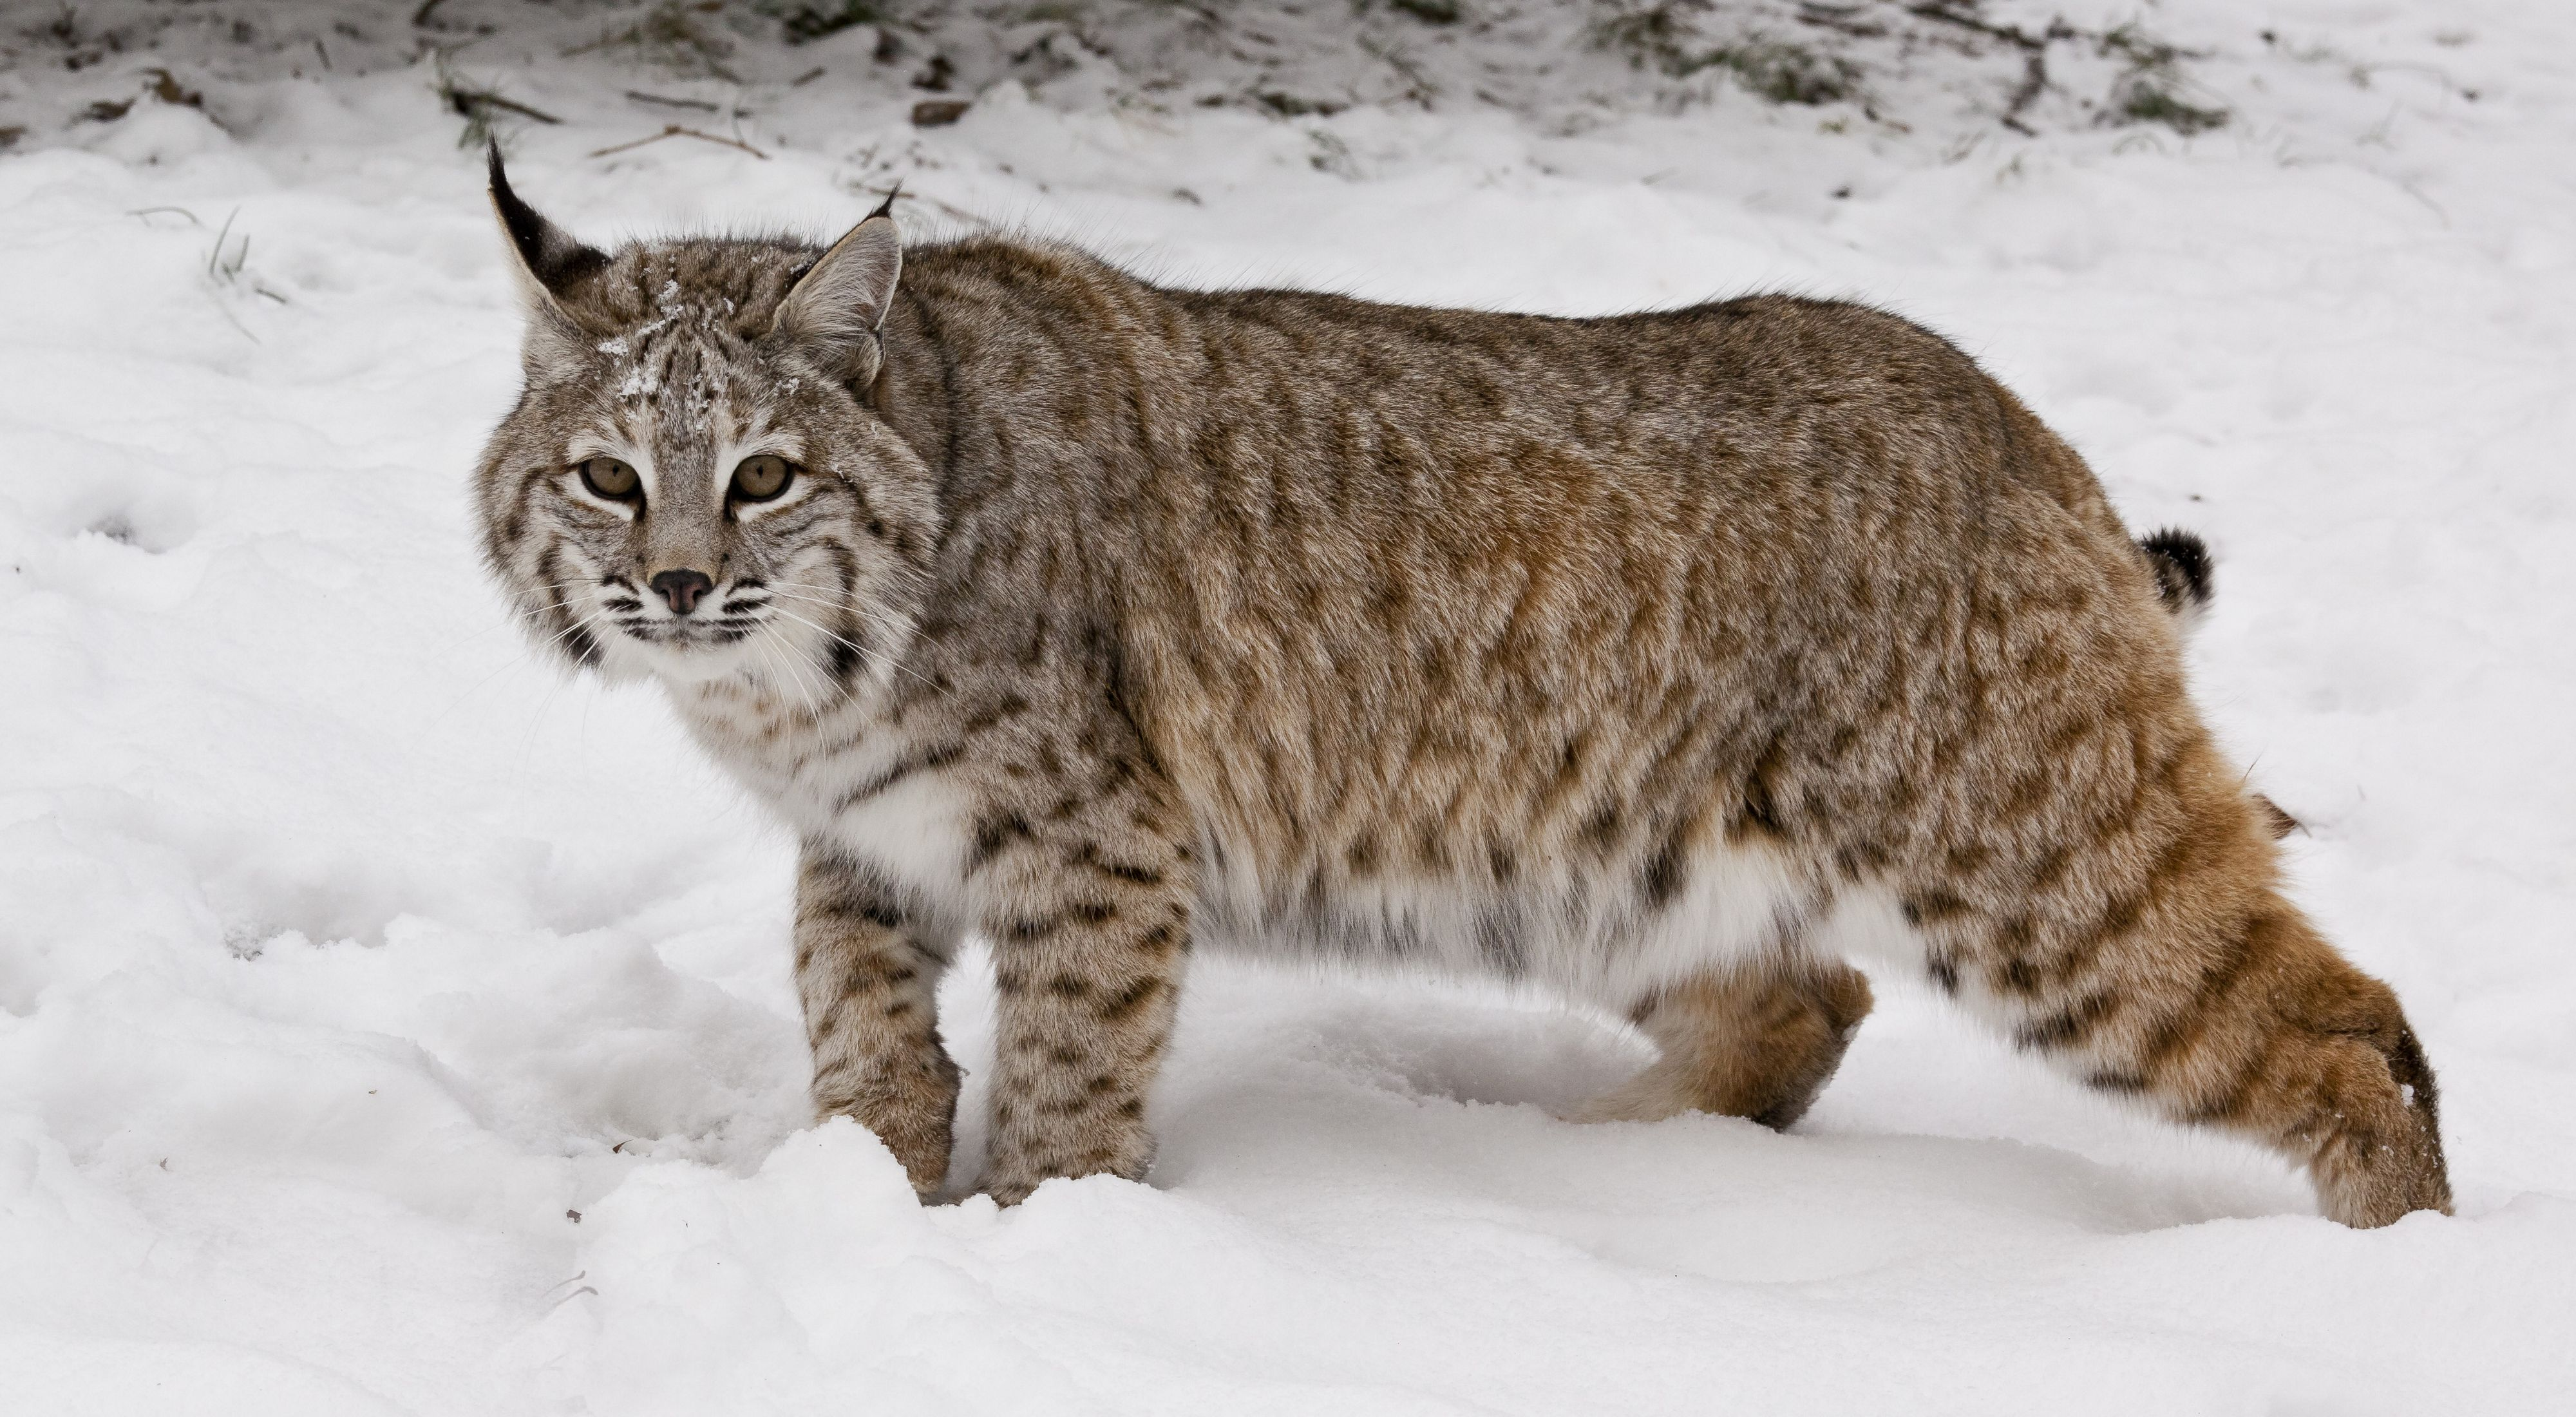 side view of a bobcat walking through the snow